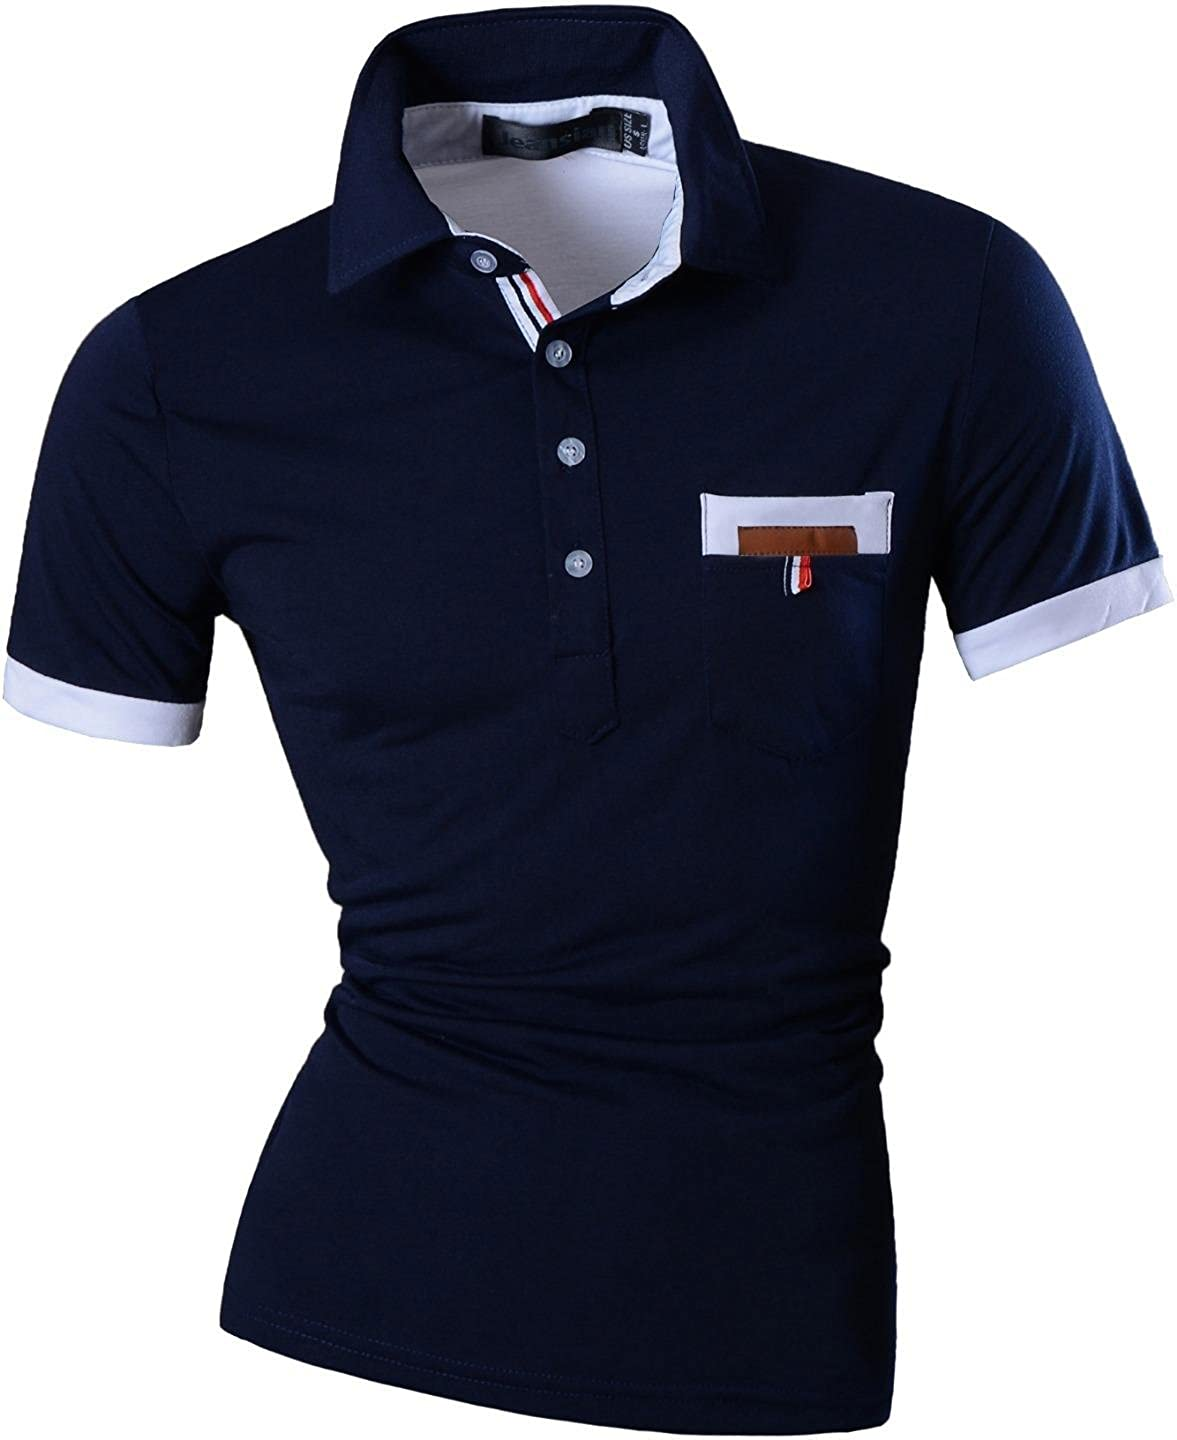 jeansian Mens Slim Fit Short Sleeves Casual Polo Tee T-Shirts U012